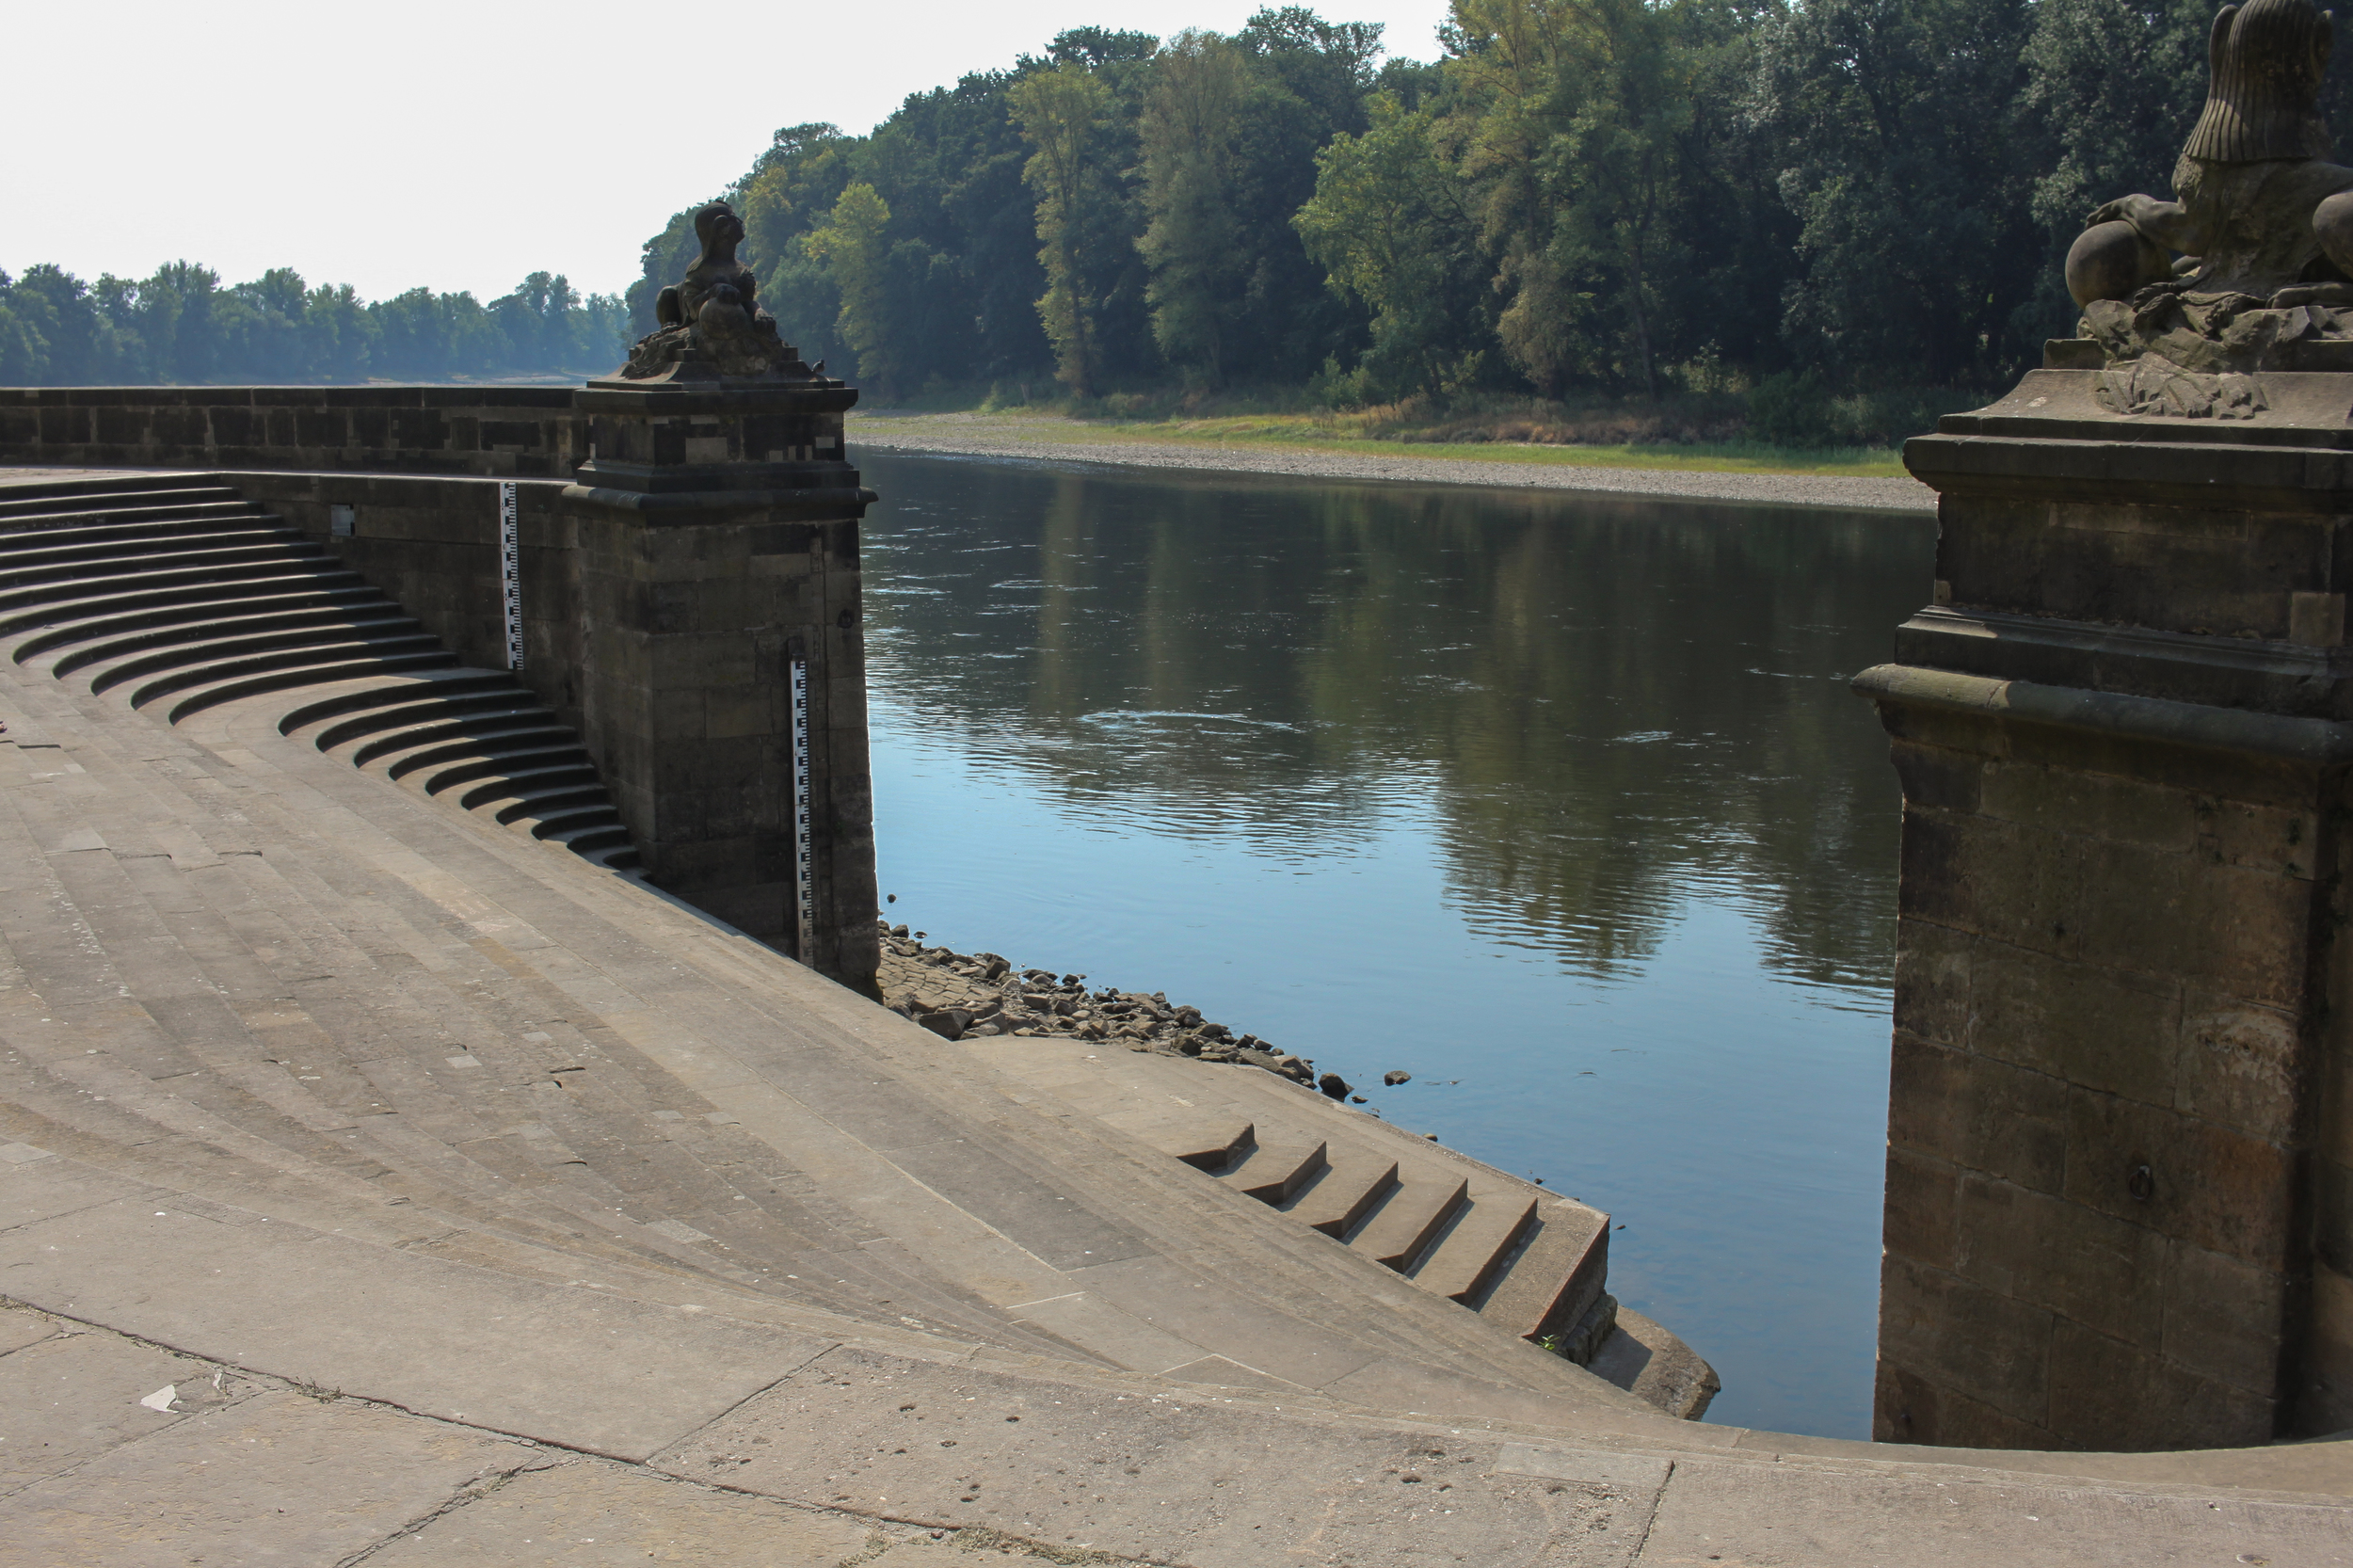 Dock of Schloss Pillnitz